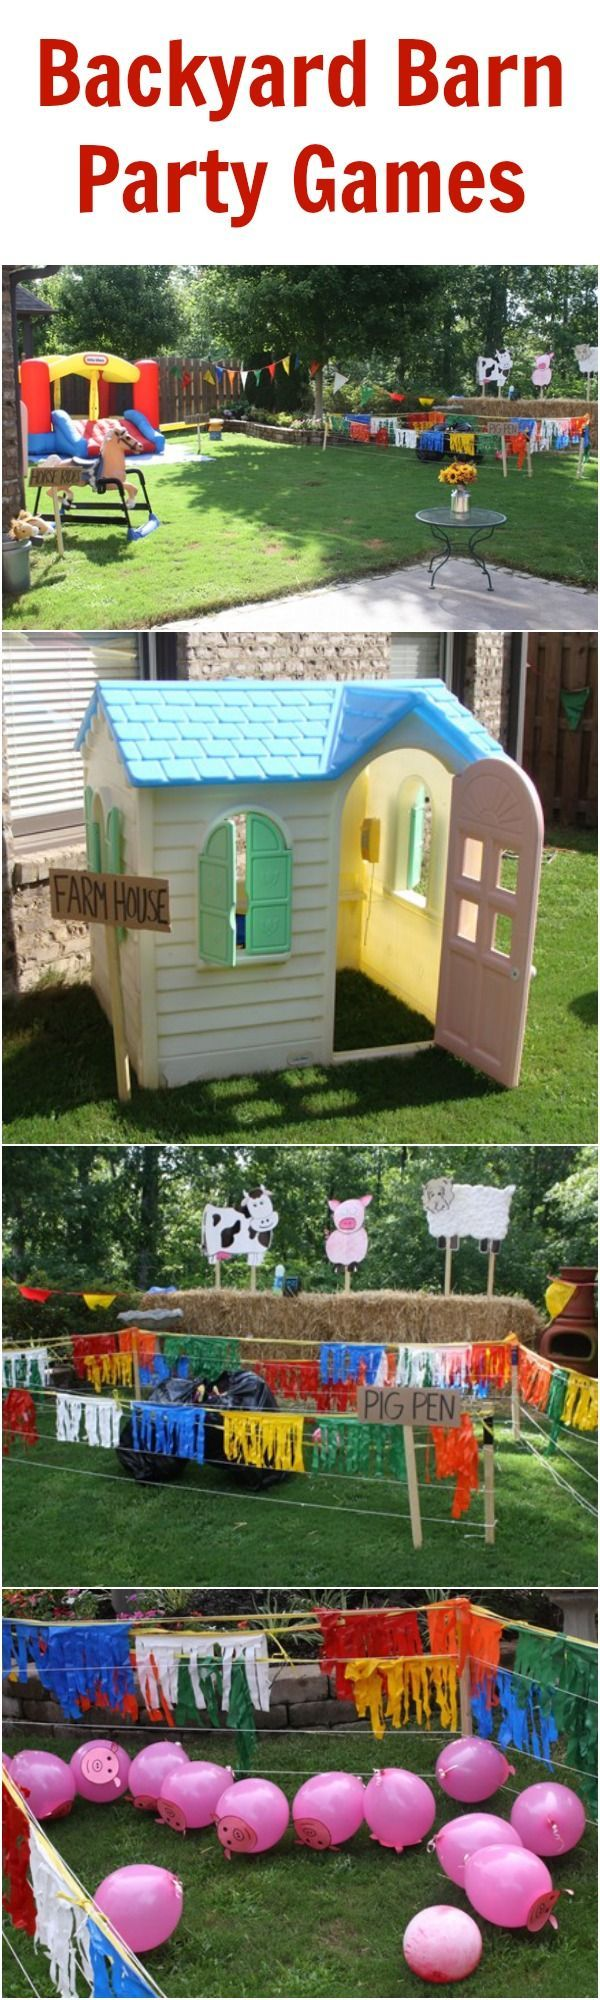 Backyard Party Games with a barn theme! Great for birthday parties